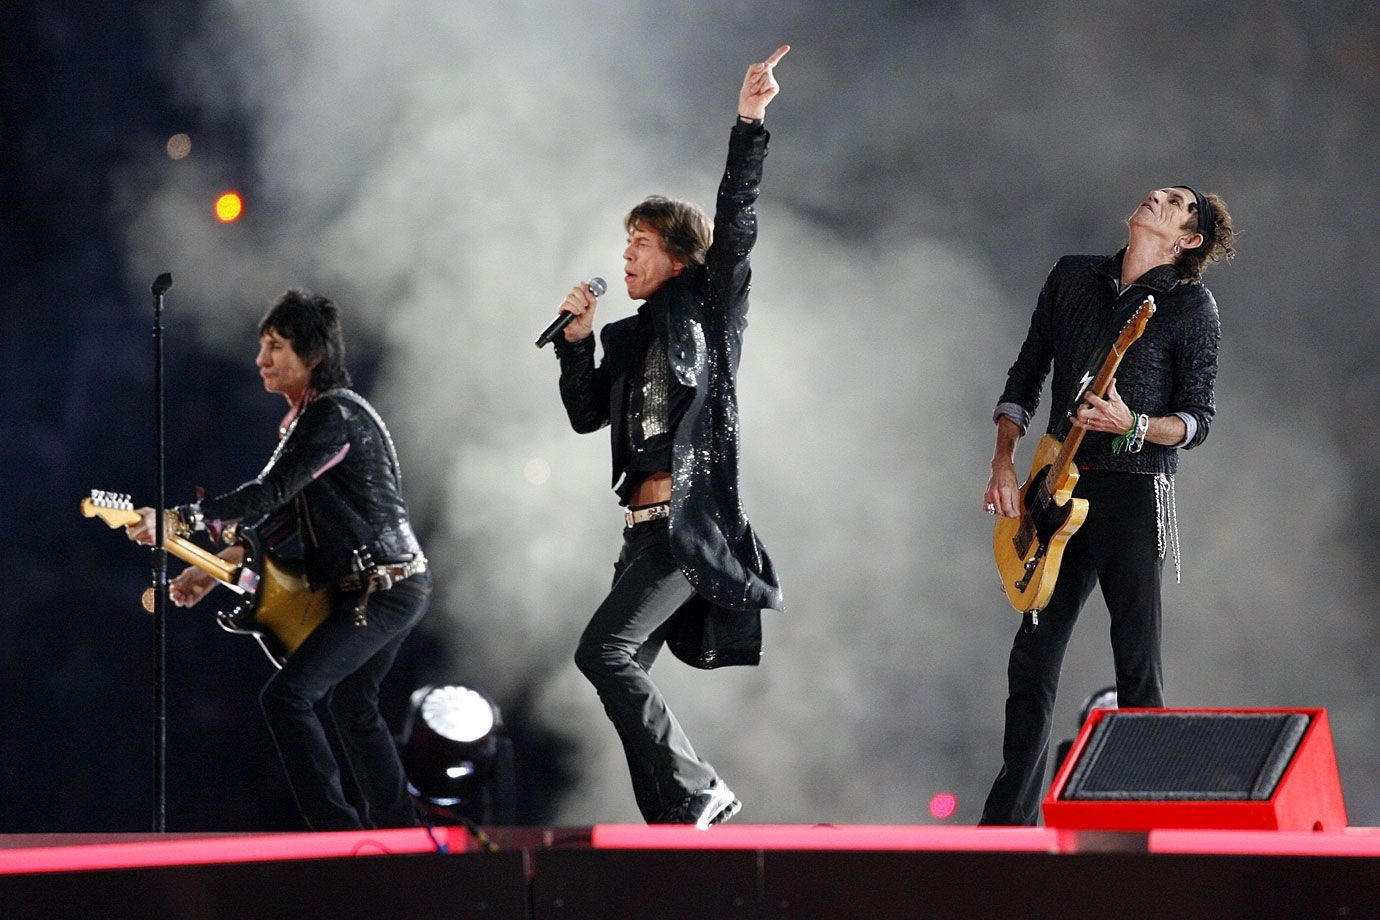 The 10 Best Super Bowl Halftime Shows | Cakes | Rolling pertaining to Rolling Stones Super Bowl